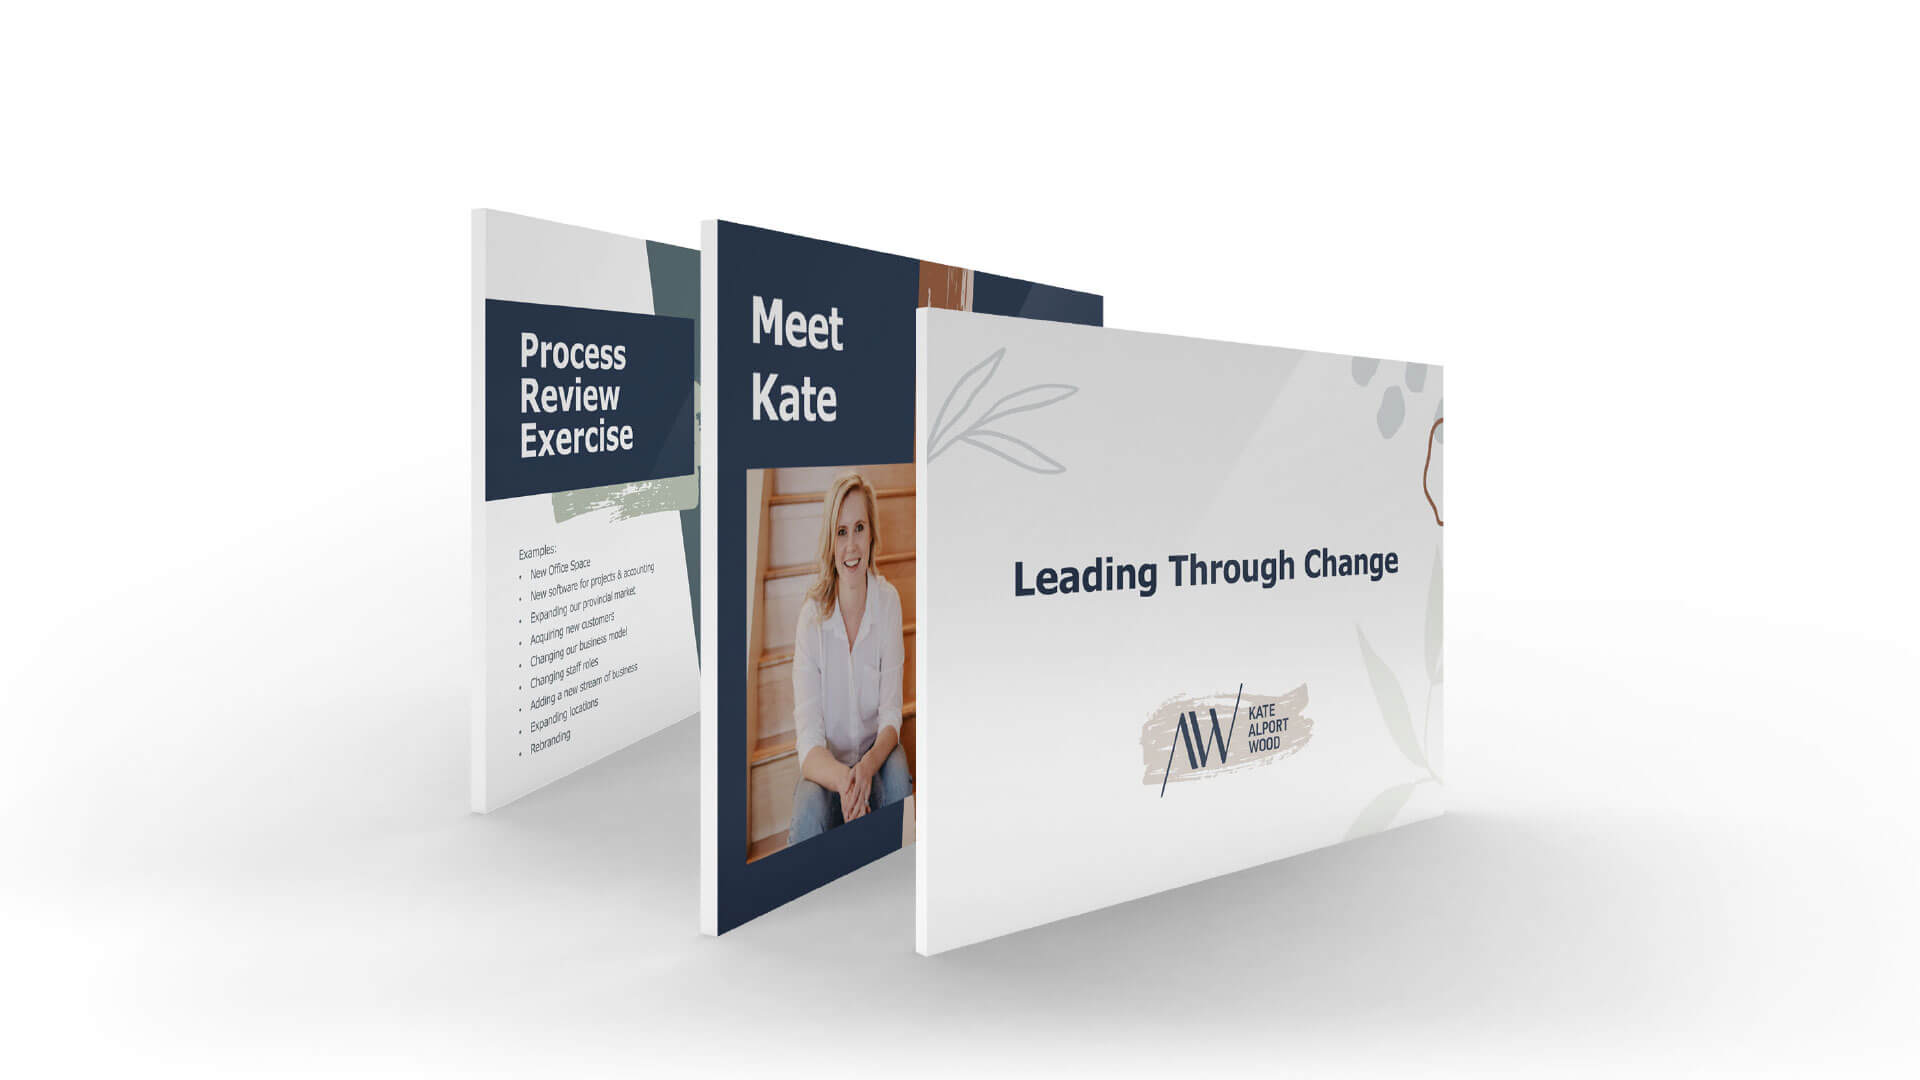 Kate Alport Wood Consulting, Digital, Kate Alport Wood Consulting Presentation Template, Portfolio Image,